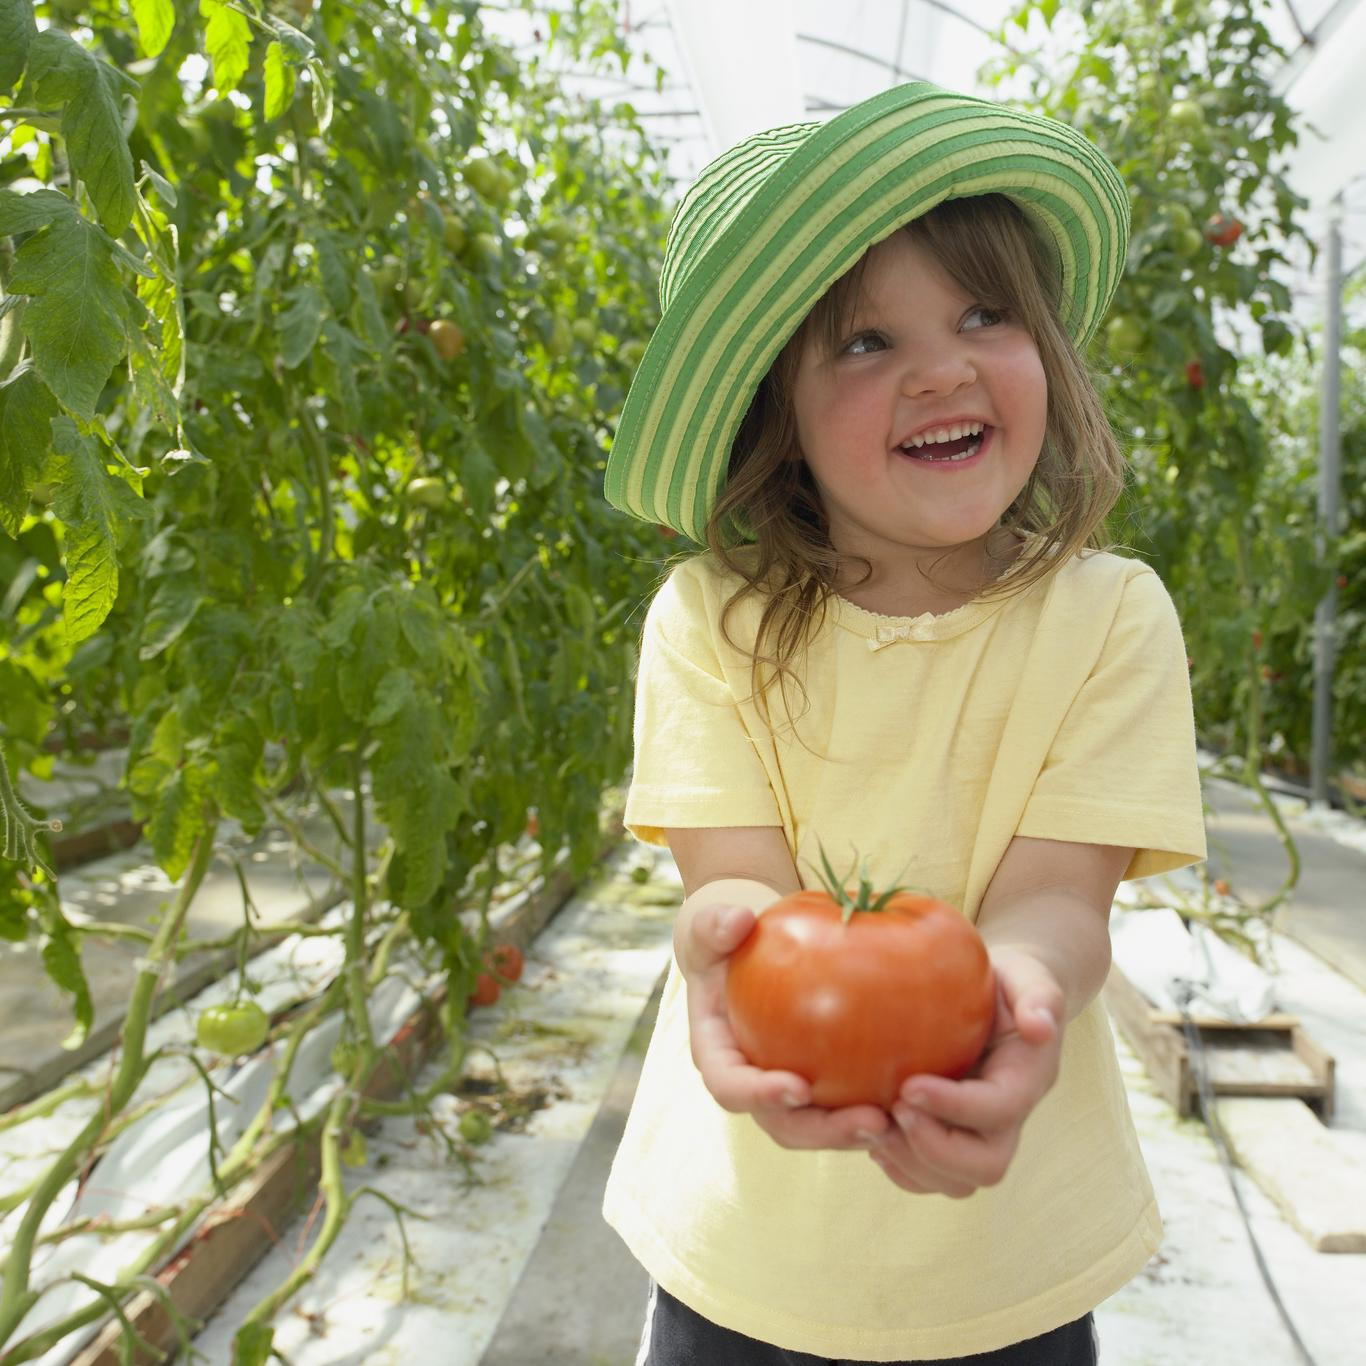 A little girl holding a tomato